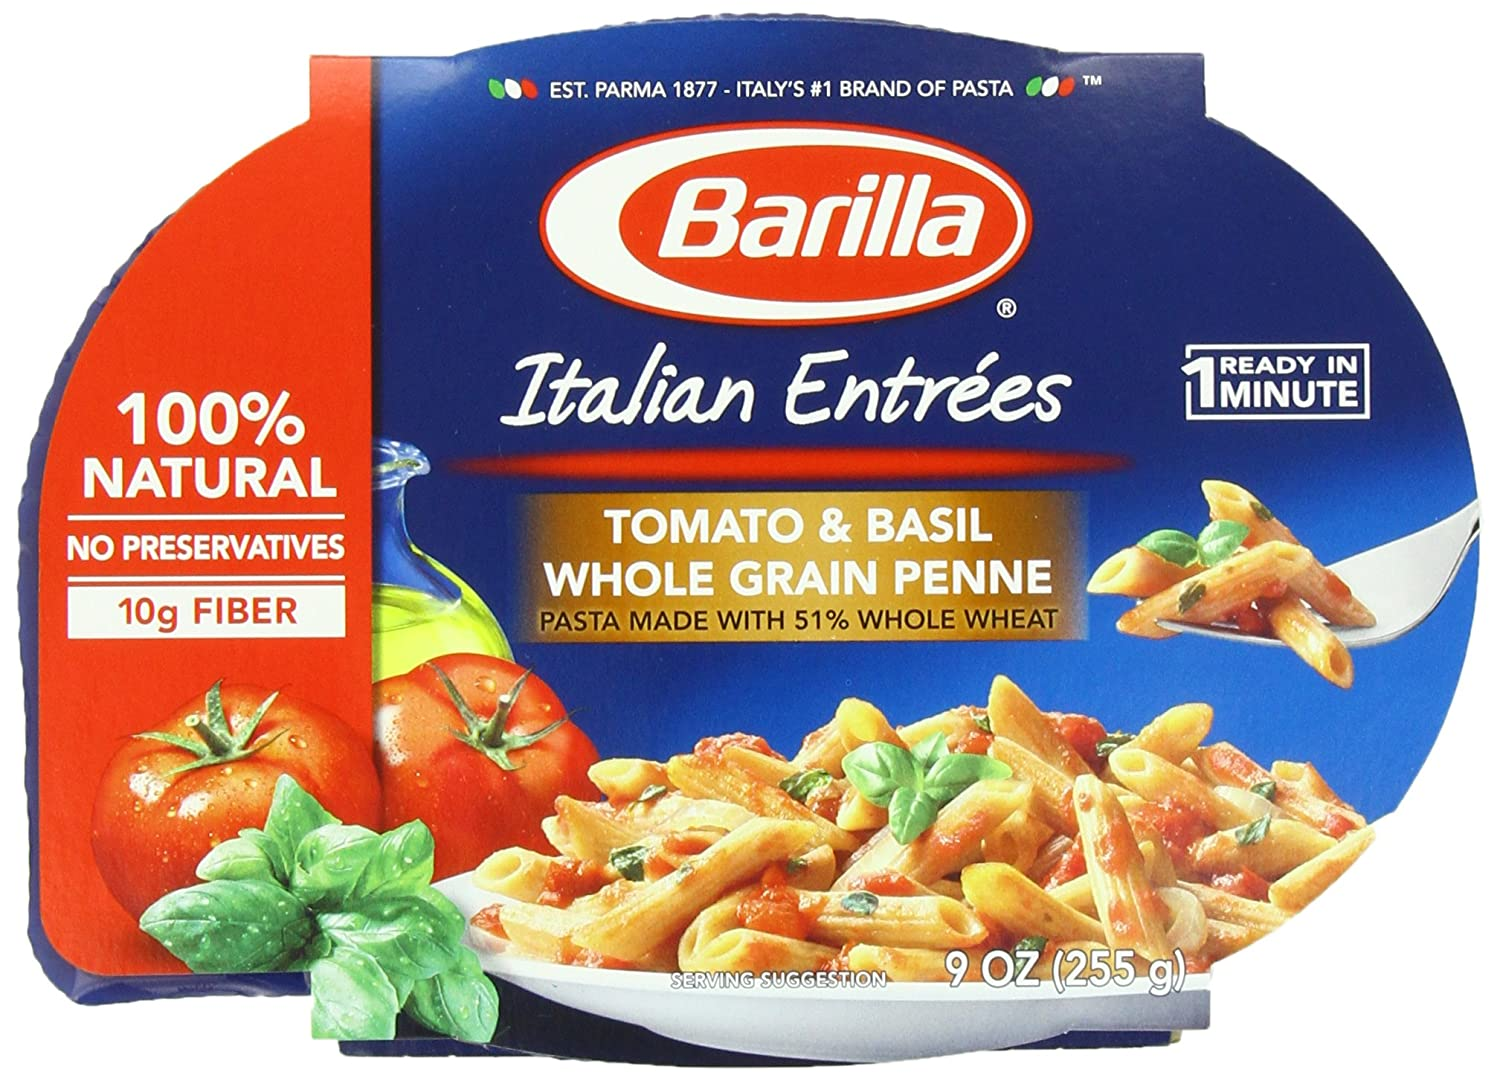 com barilla italian entrees meat sauce gemelli 9 ounce  com barilla italian entrees meat sauce gemelli 9 ounce pack of 6 packaged pasta dinner kits grocery gourmet food